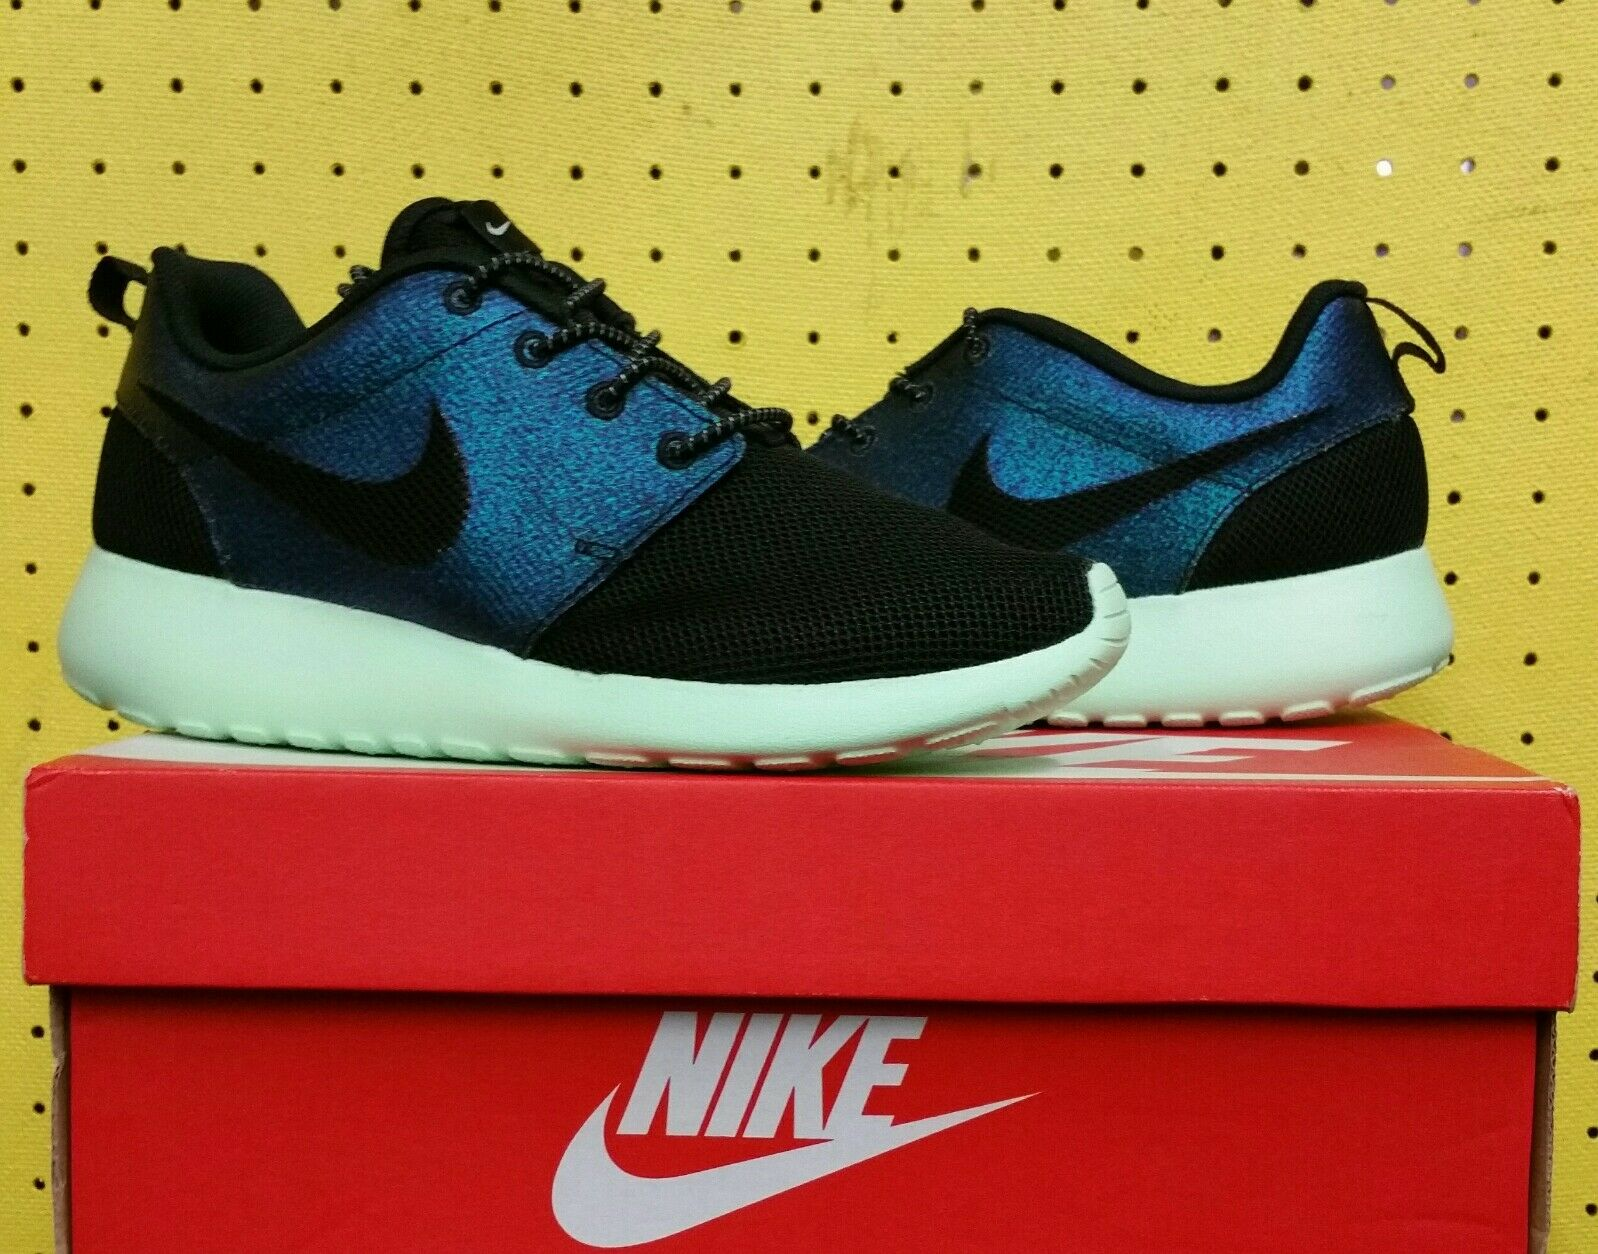 NEW Womens Nike Roshe Teal One WWC QS Shoes Teal Roshe Vapor Green Sz 5.5 808708 303 Run 704e88